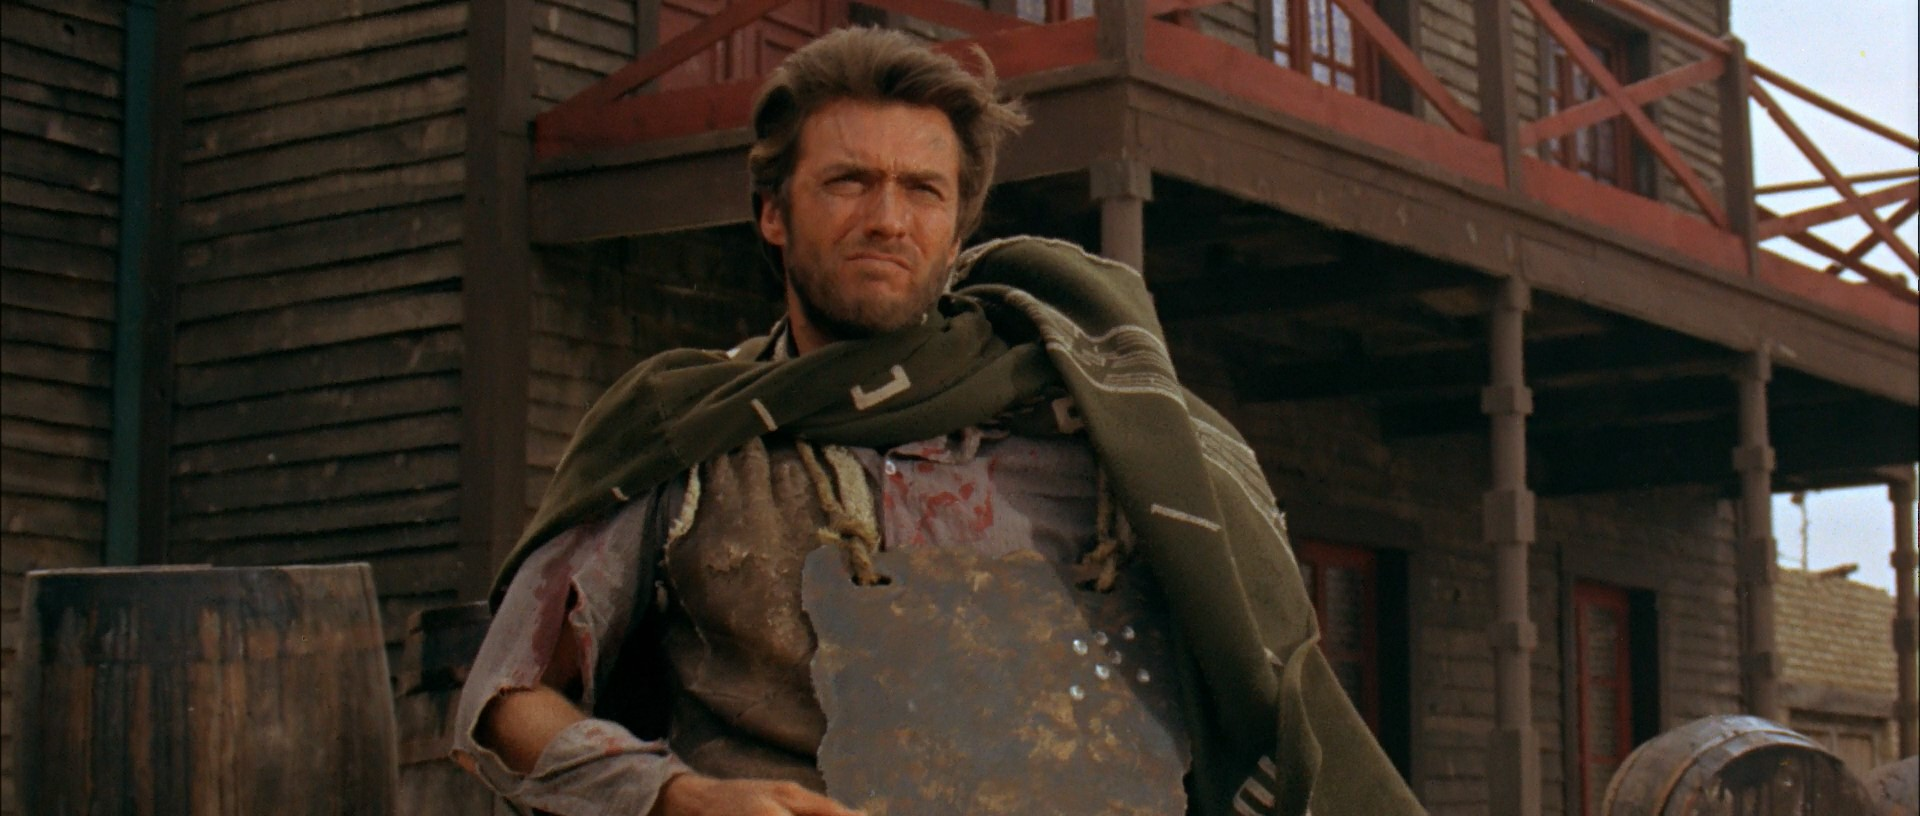 A.Fistful.of.Dollars.(1964).BluRay.1080p.x264.DTS-McFly.4xRus.mkv snapshot 01.33.40 [2018.12.16 00.42.54]